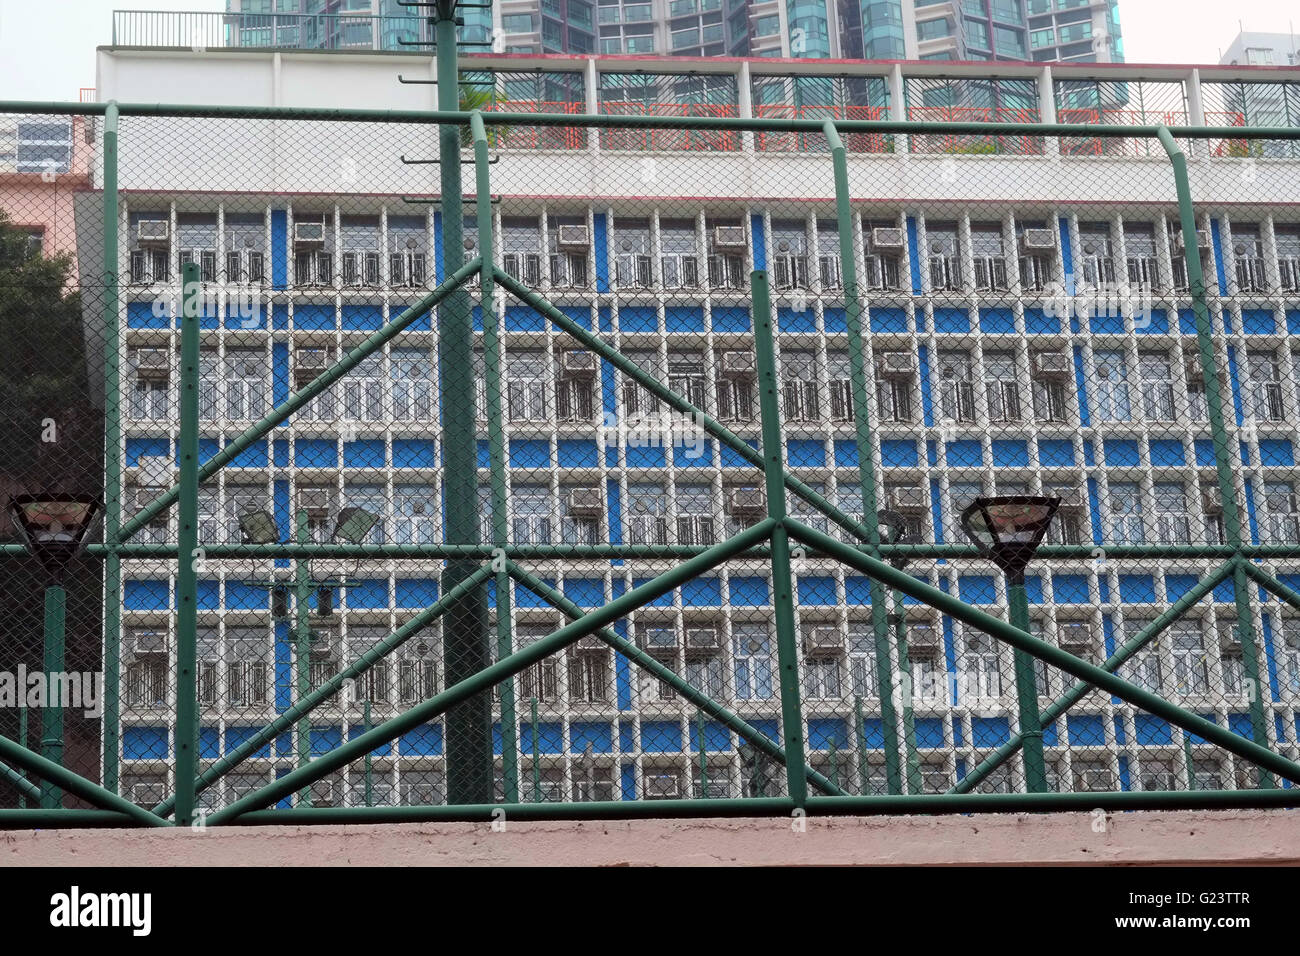 Urban high density architecture in Hong Kong. - Stock Image